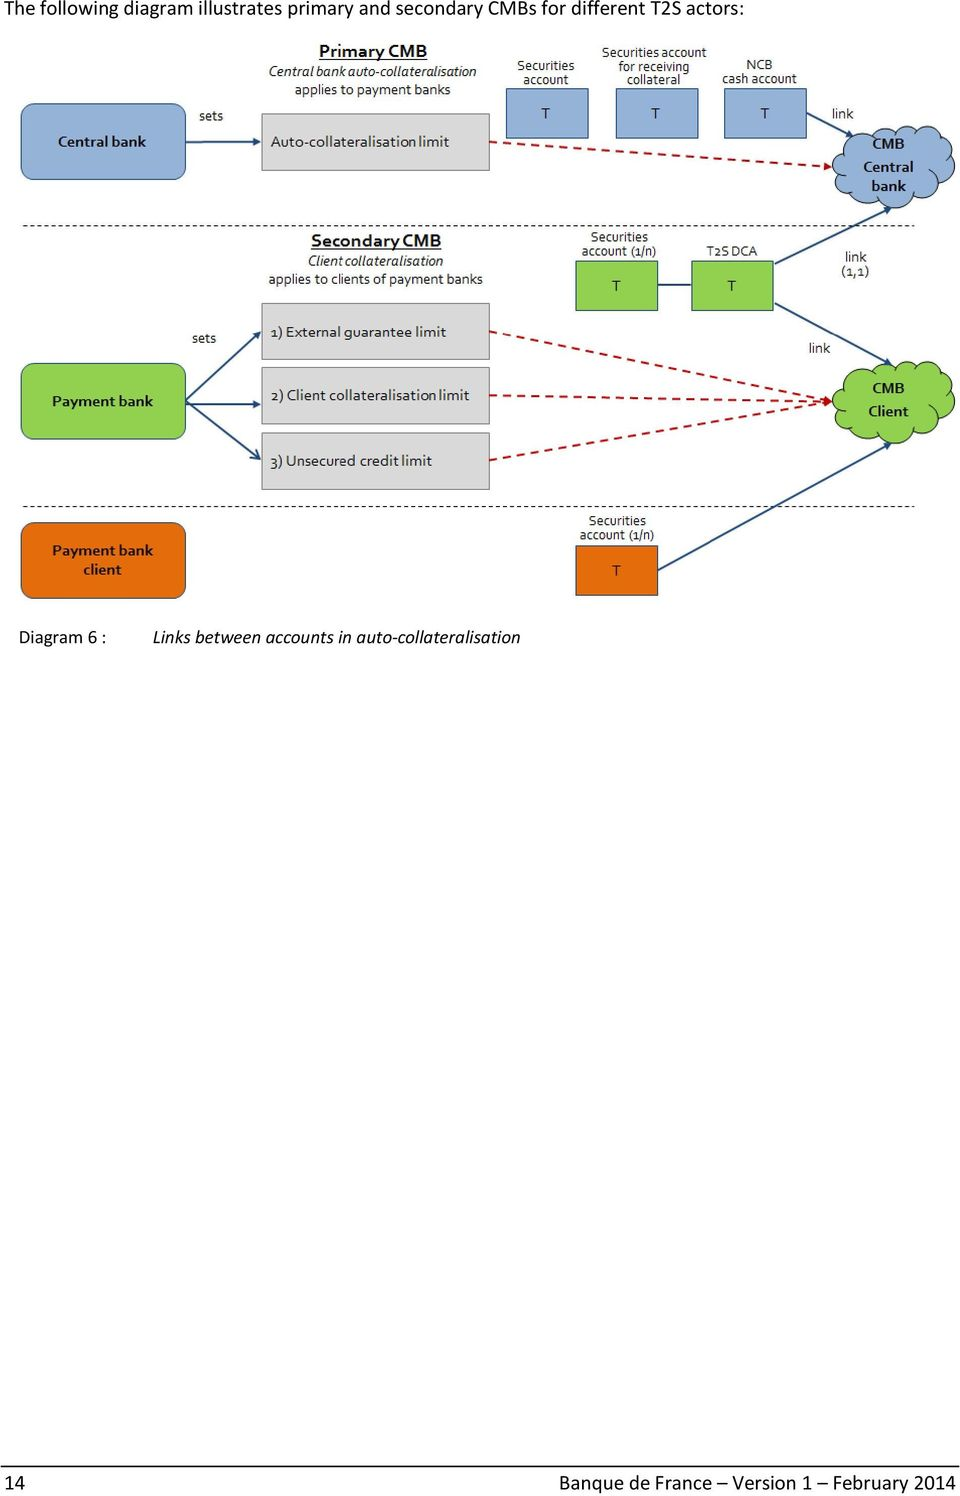 Diagram 6 : Links between accounts in